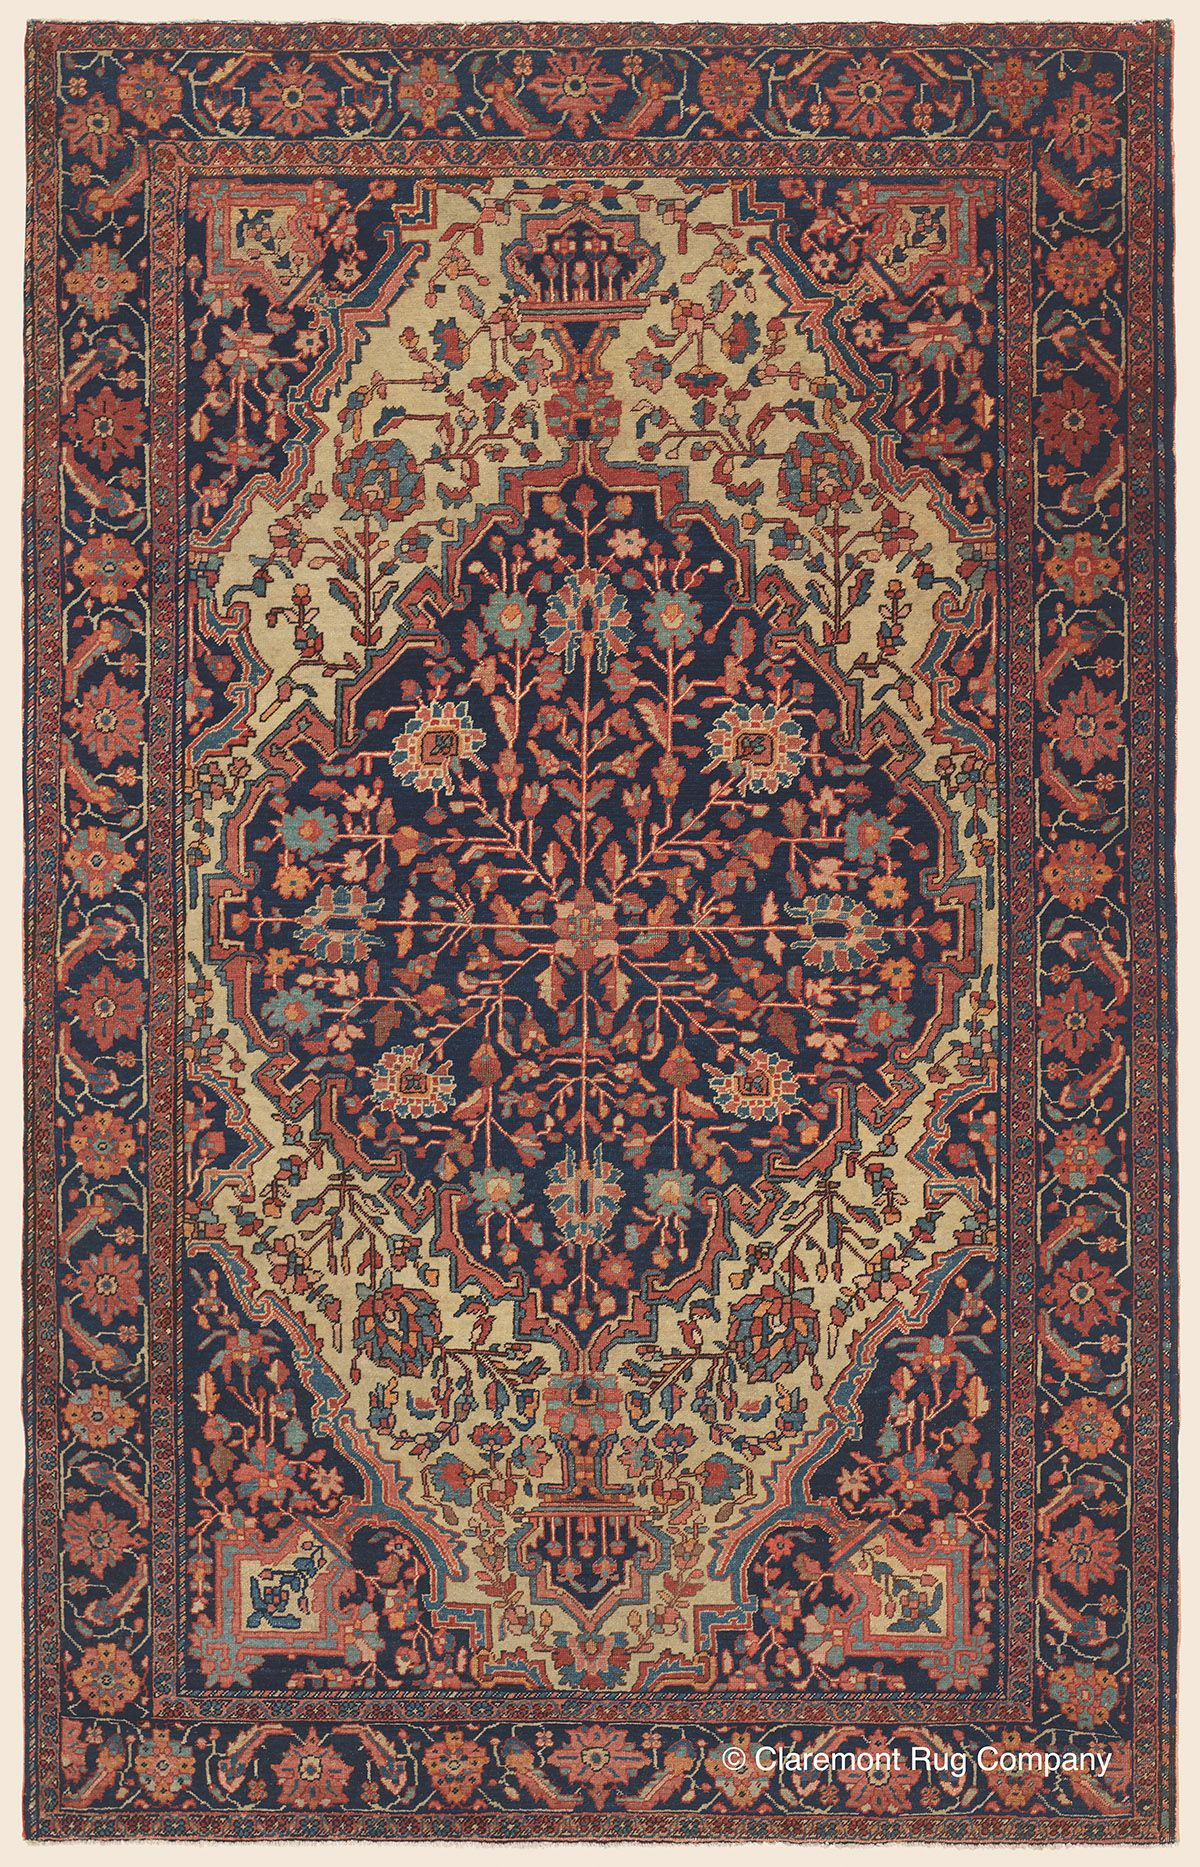 Exquisite 19th Early 20th Century Rugs From Tribal Rugs To City Oversize Carpets Elite San Francis Persian Carpet Antique Oriental Rugs Antique Persian Rug